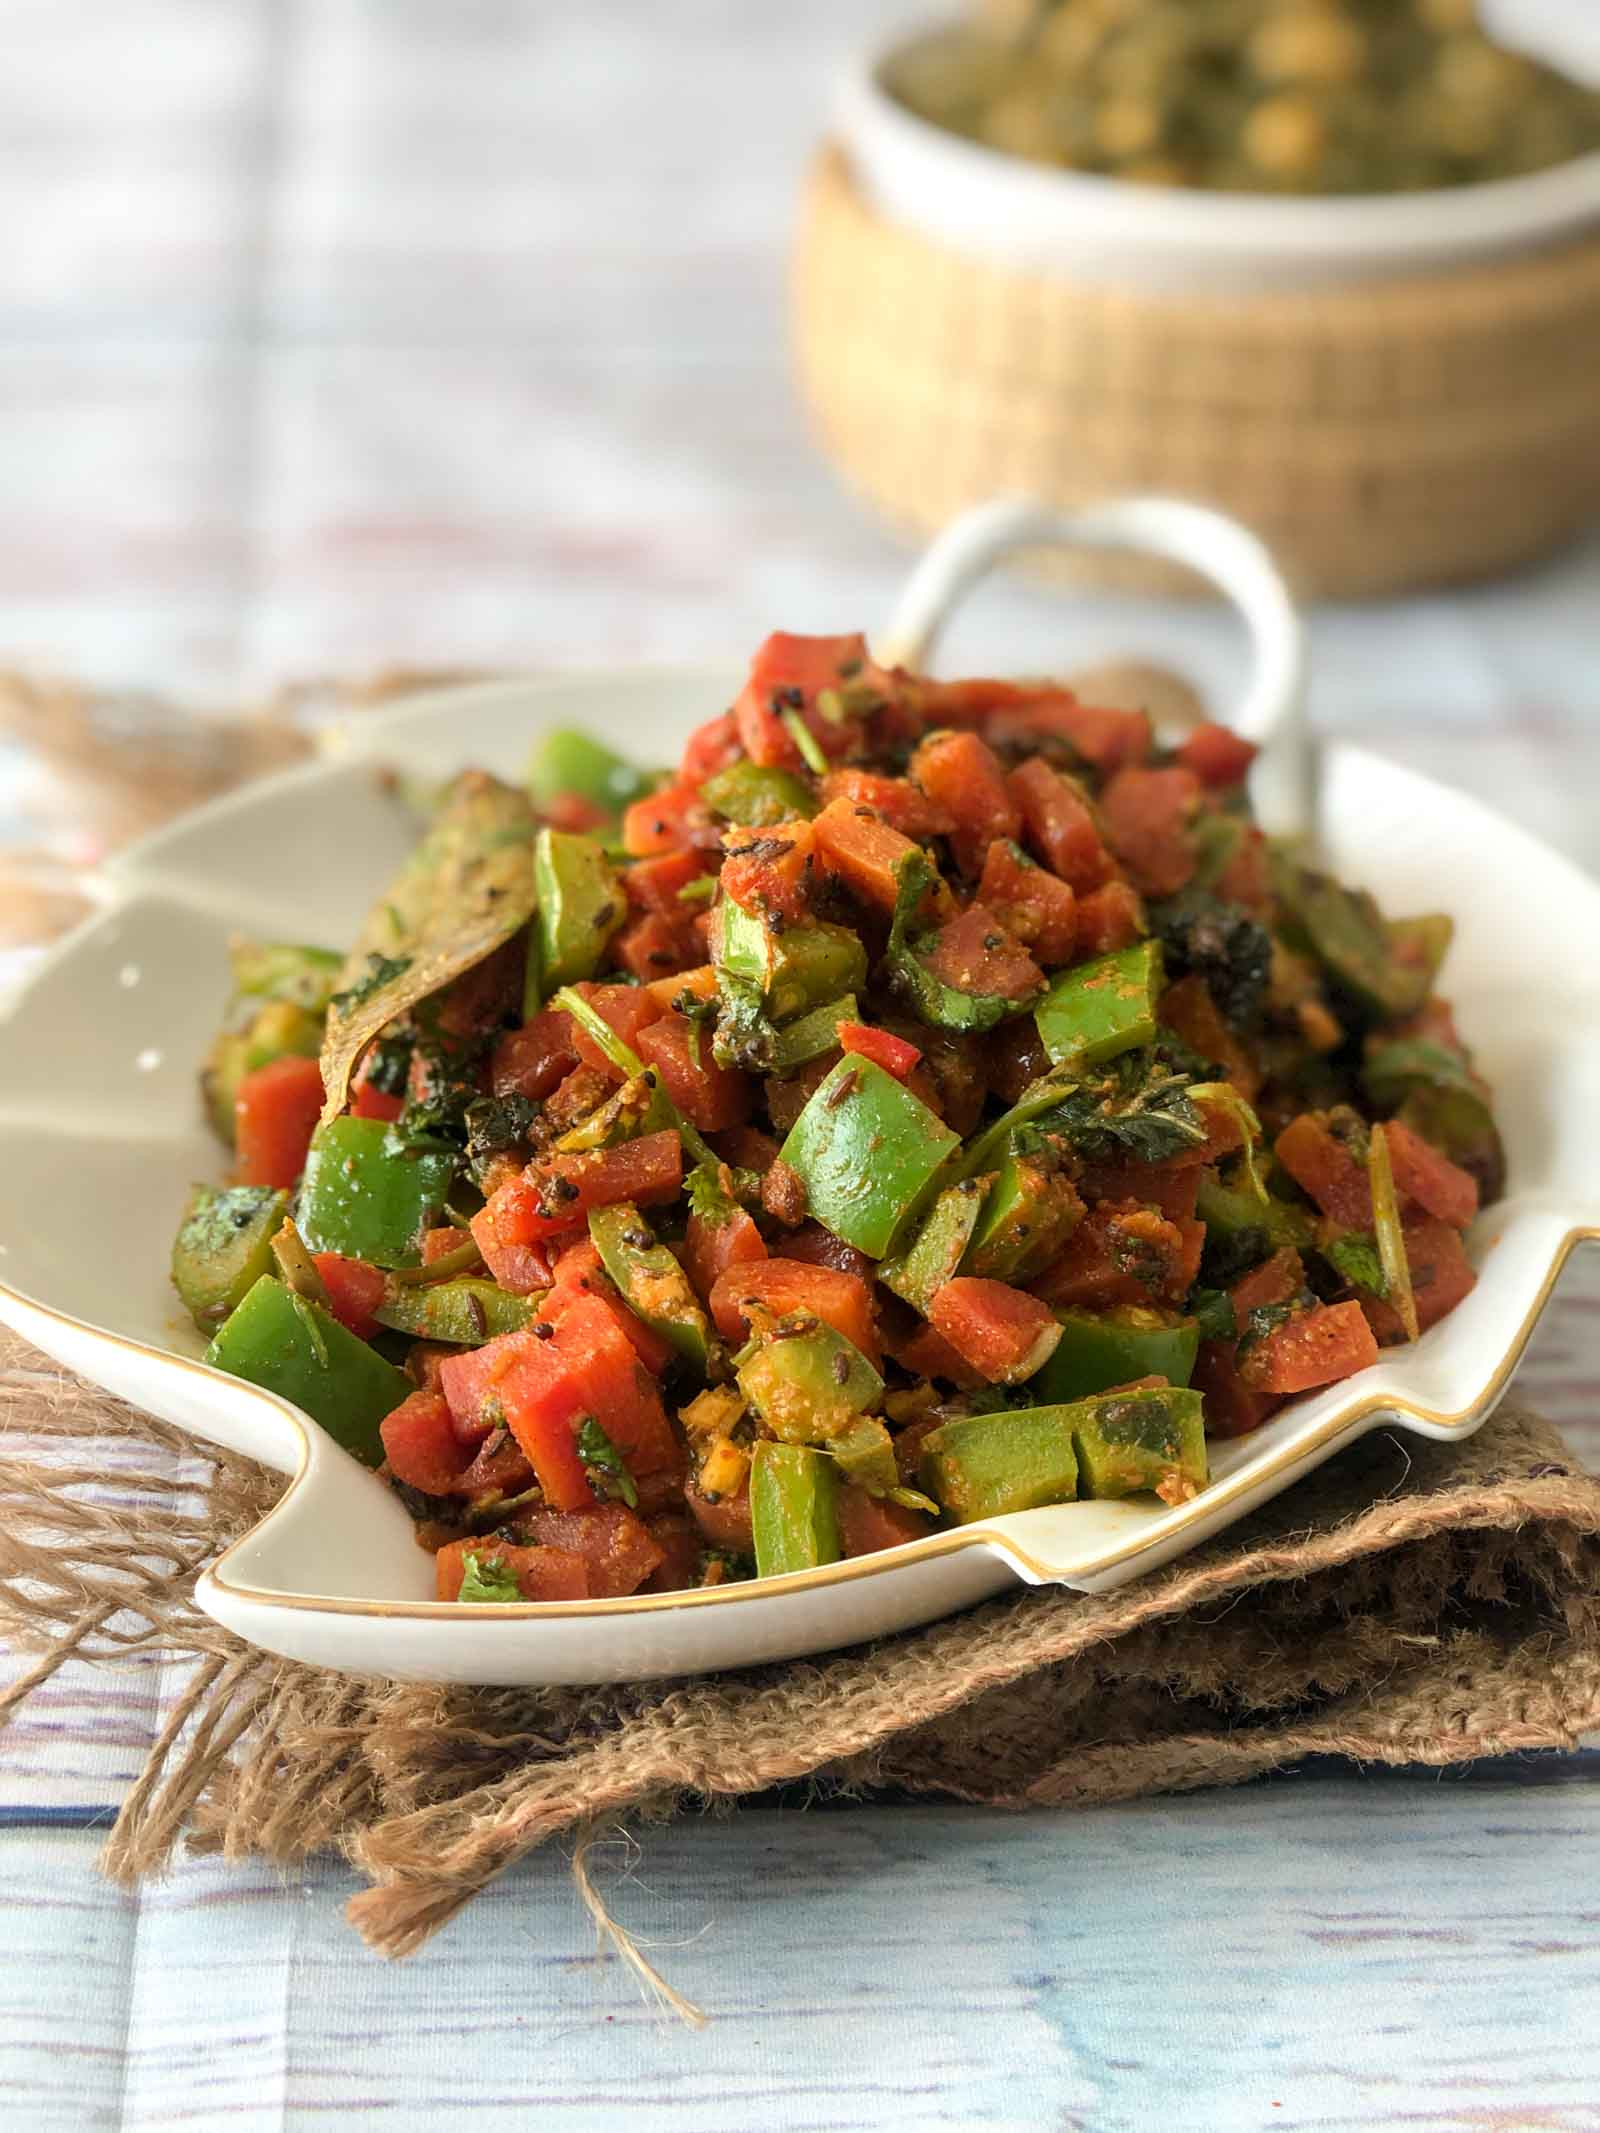 Carrot & Capsicum Sabzi Recipe - No Onion No Garlic